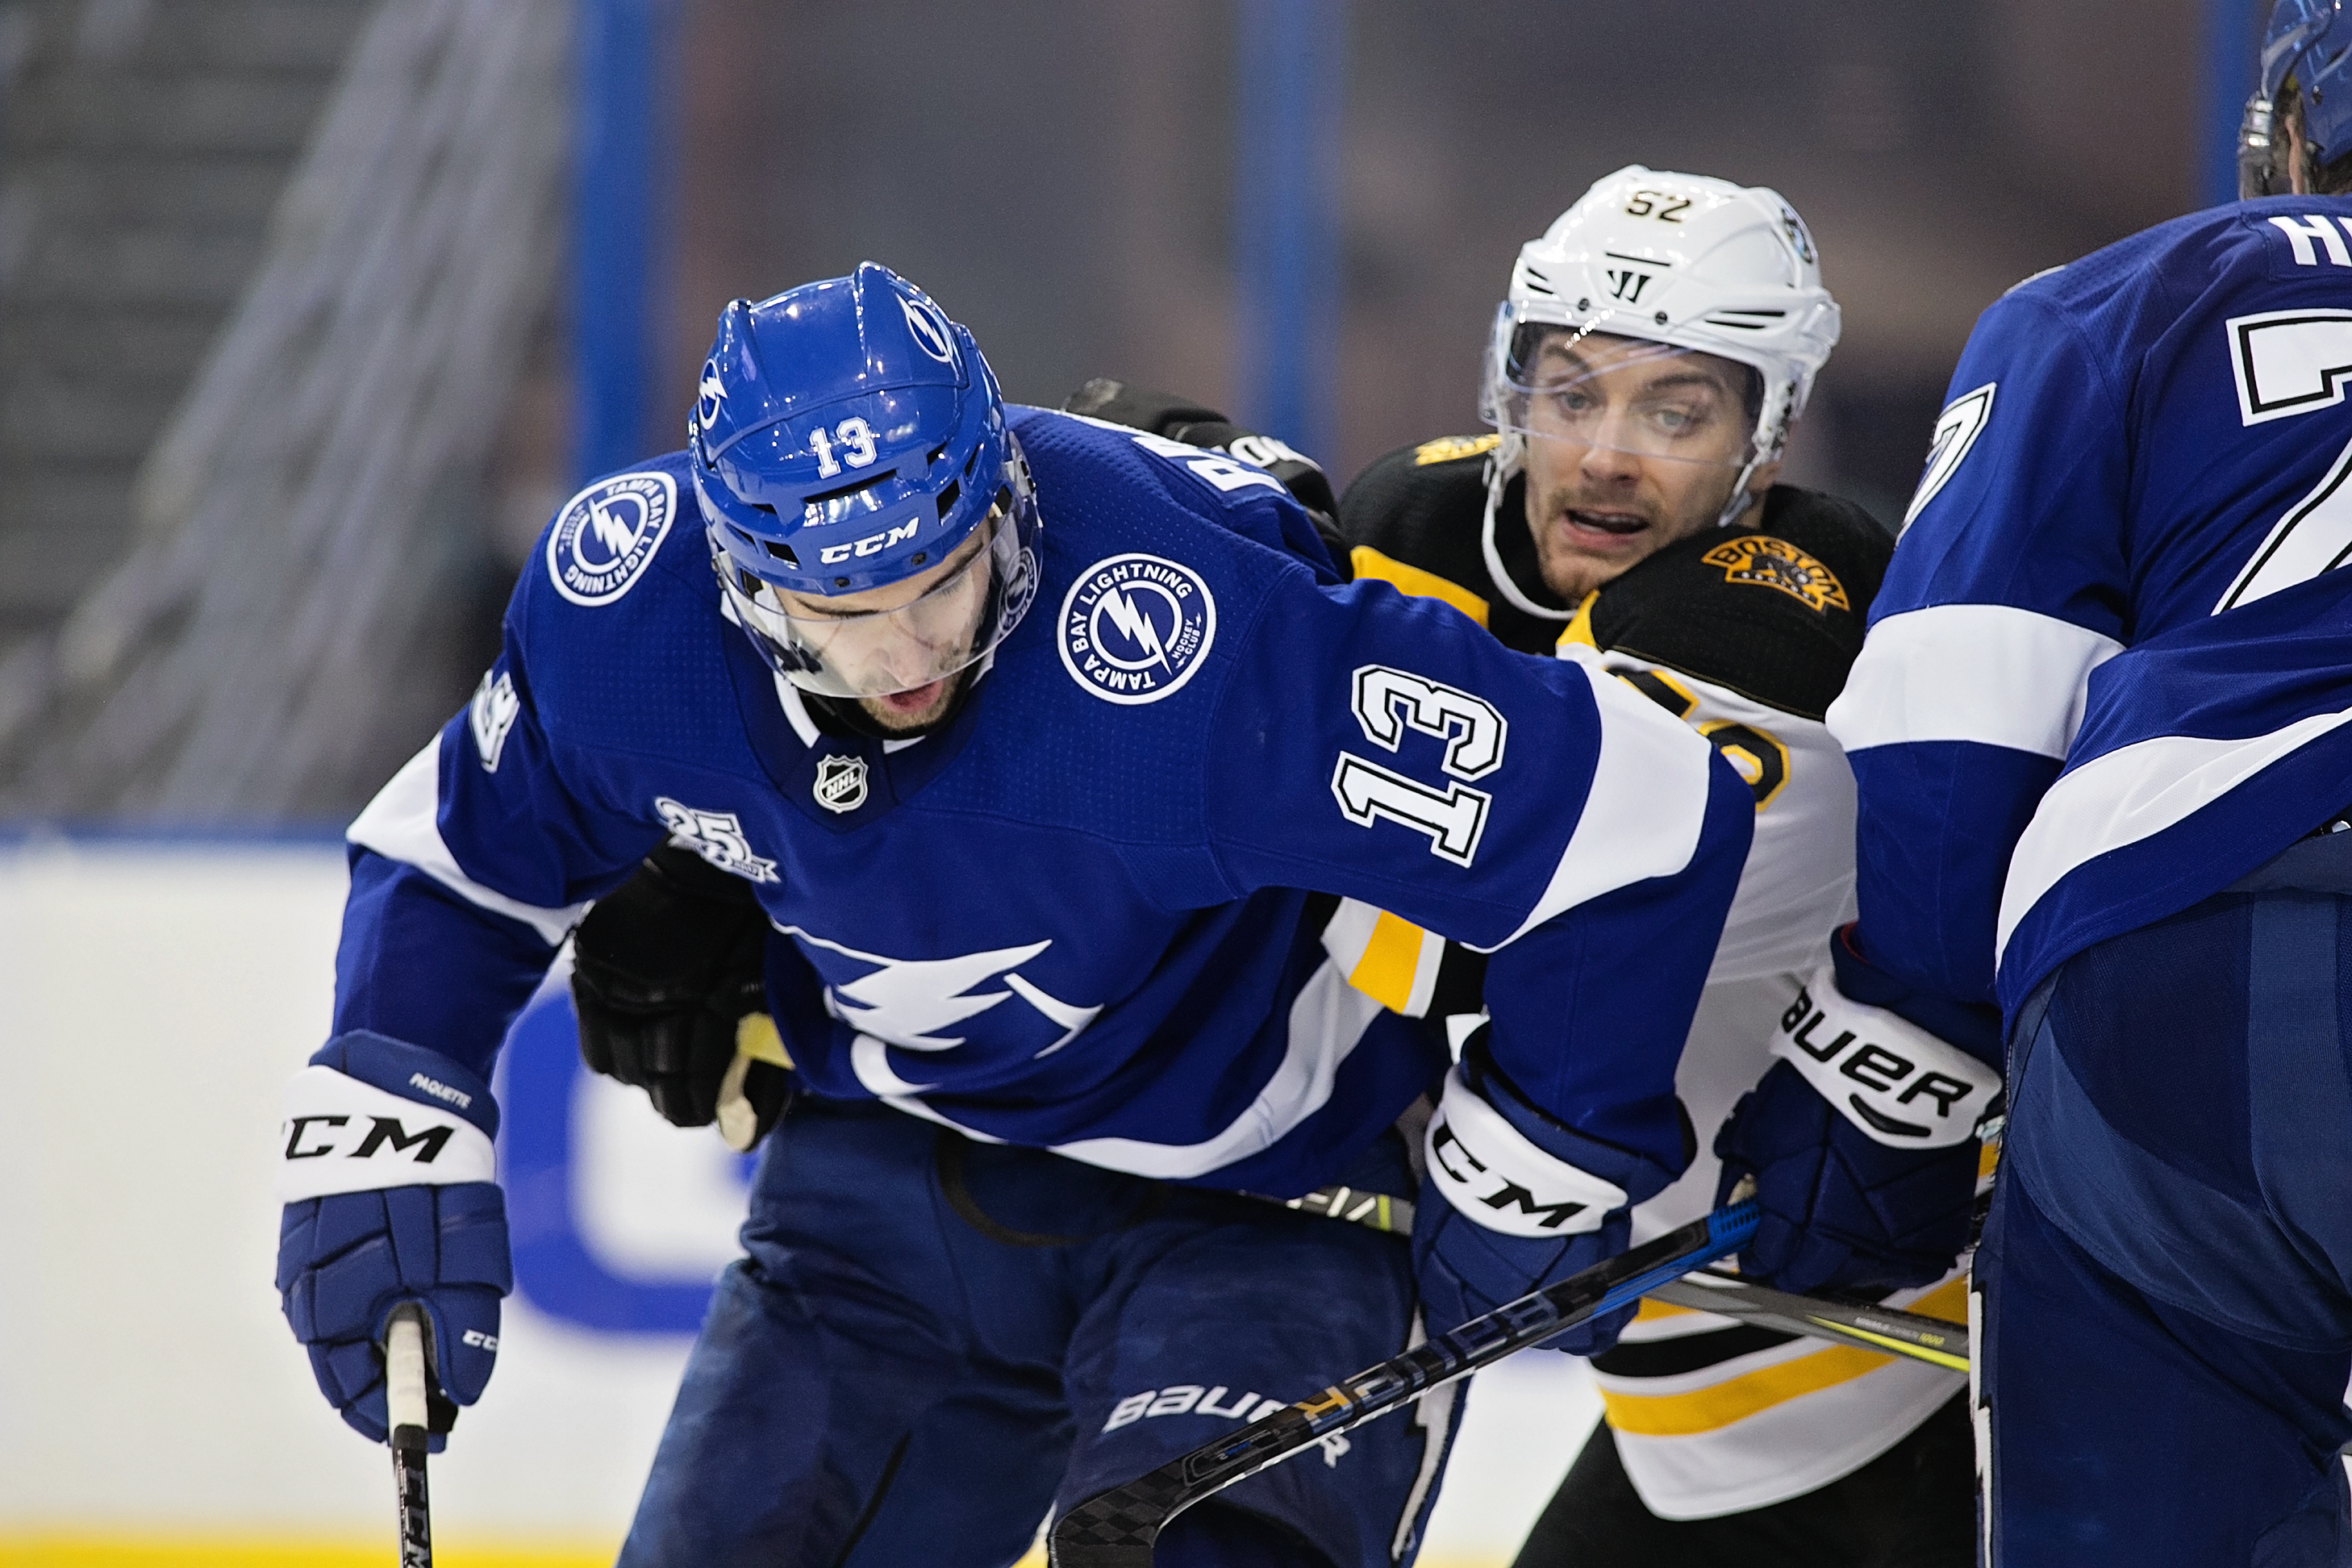 Paquette fights for space in Lightning loss./CARMEN MANDATO